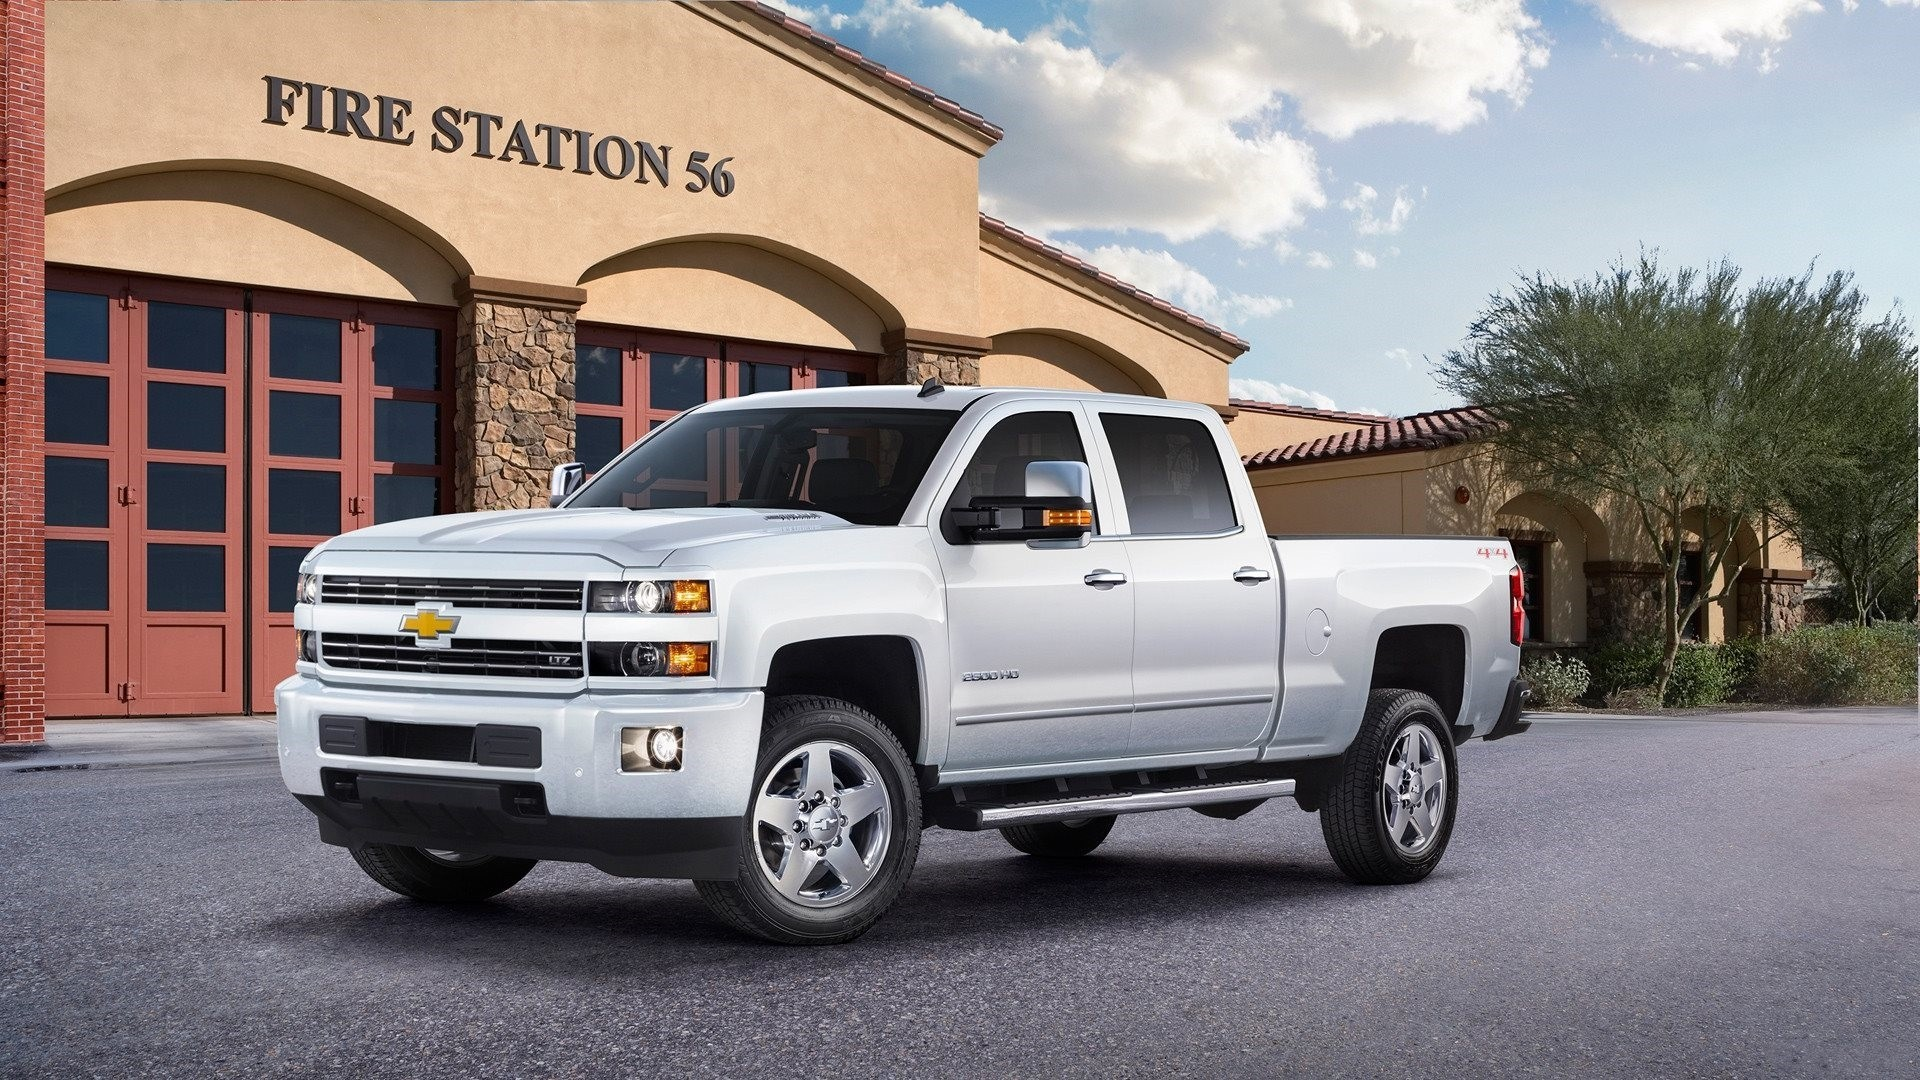 Silverado download wallpaper image